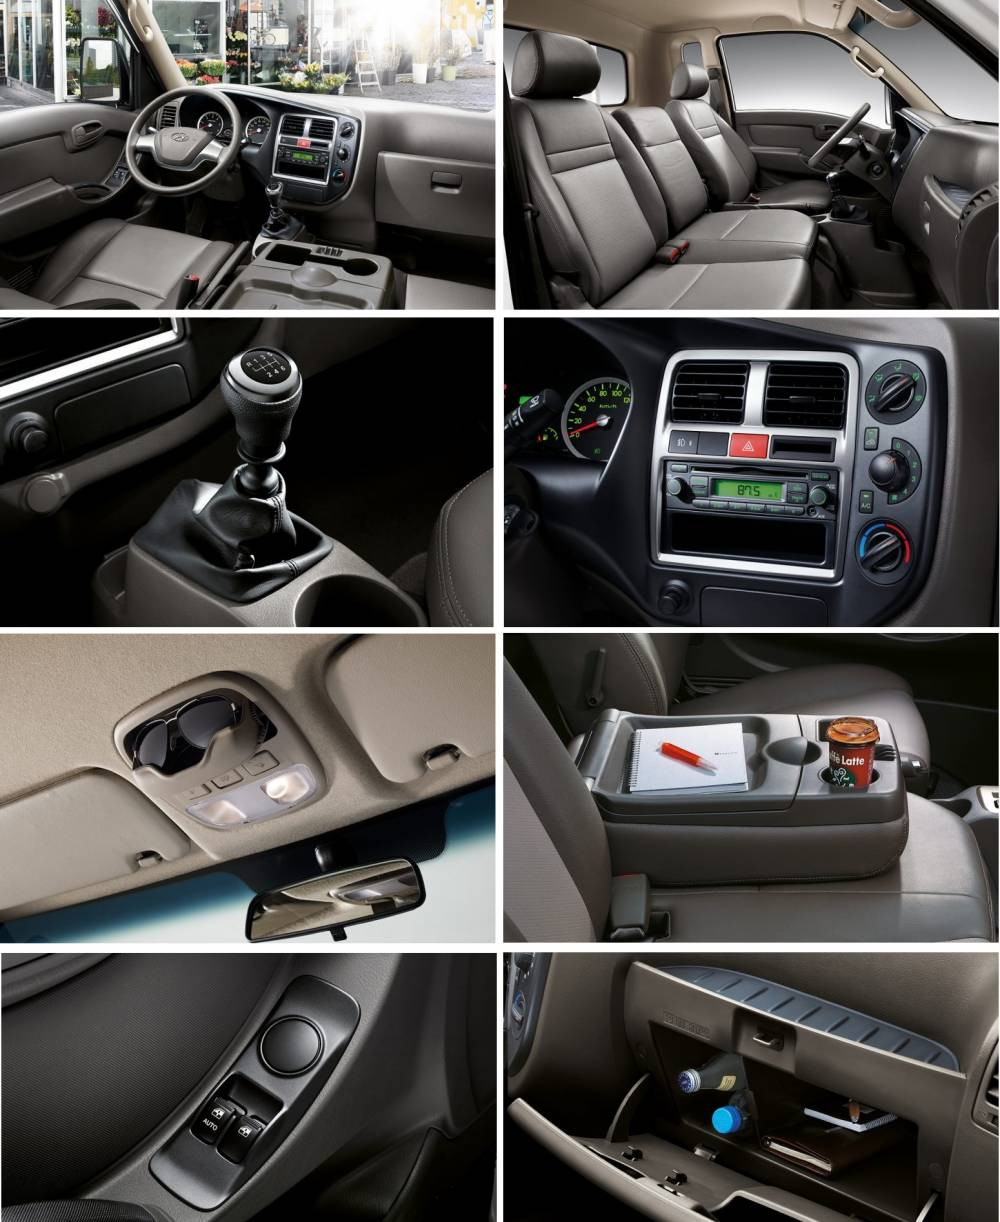 interior_driving-space_07-768x480